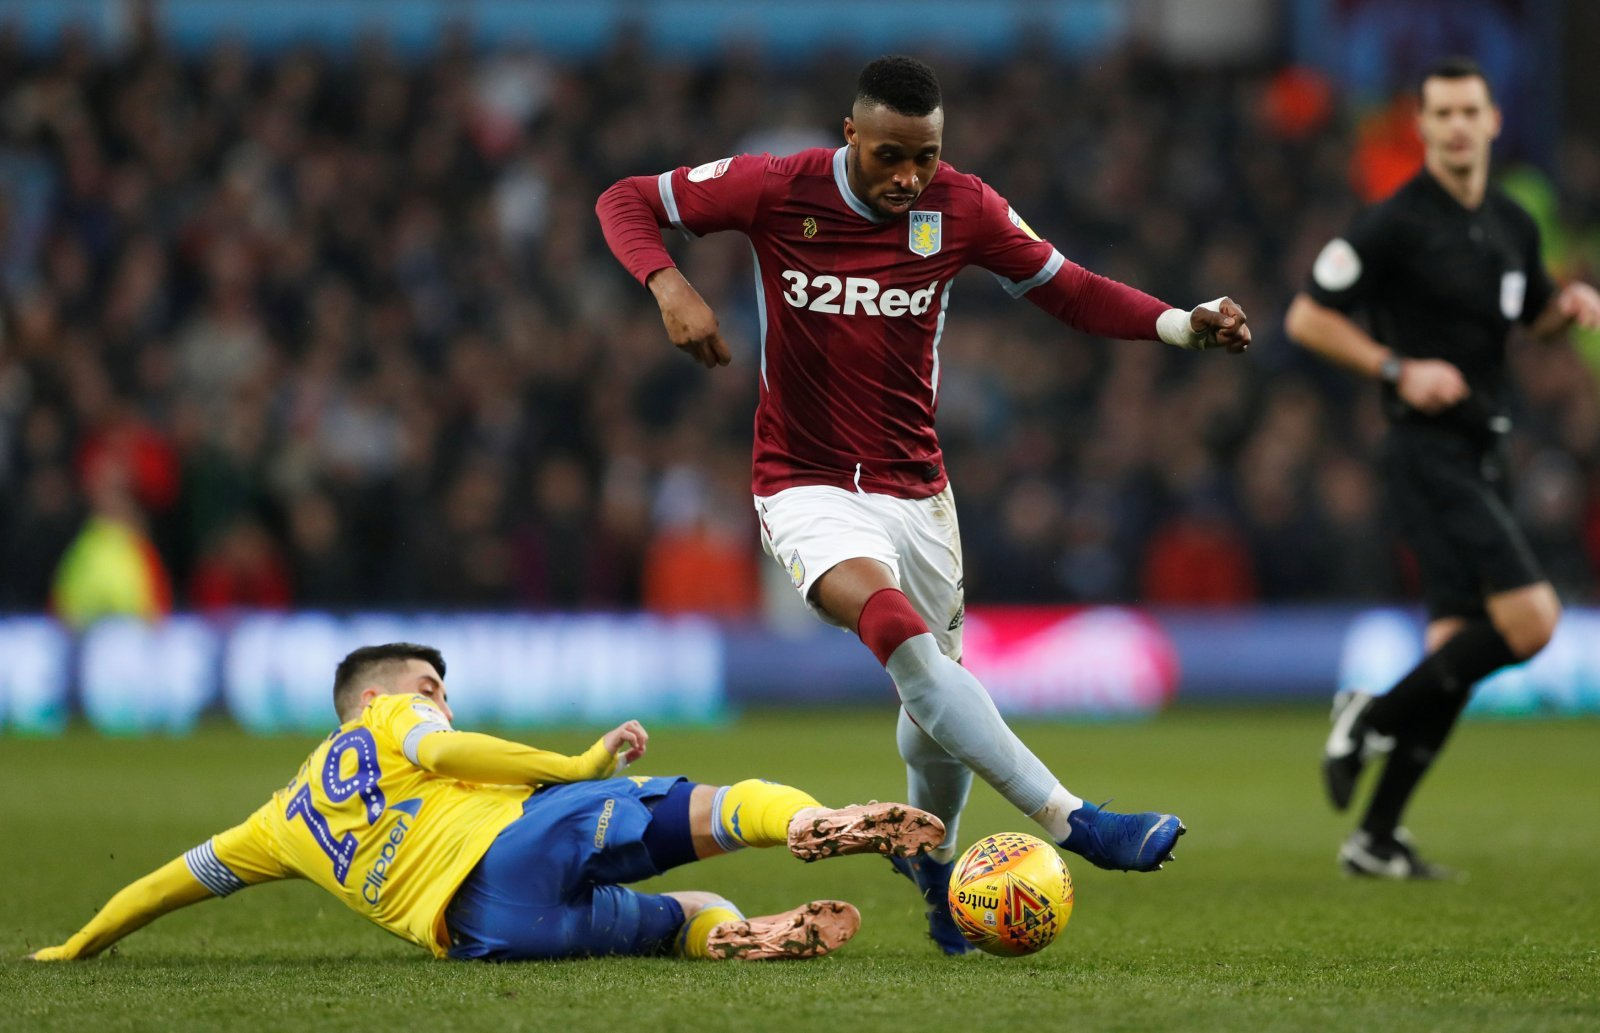 Aston Villa: Fans unconcerned by reports about potential Jonathan Kodjia exit